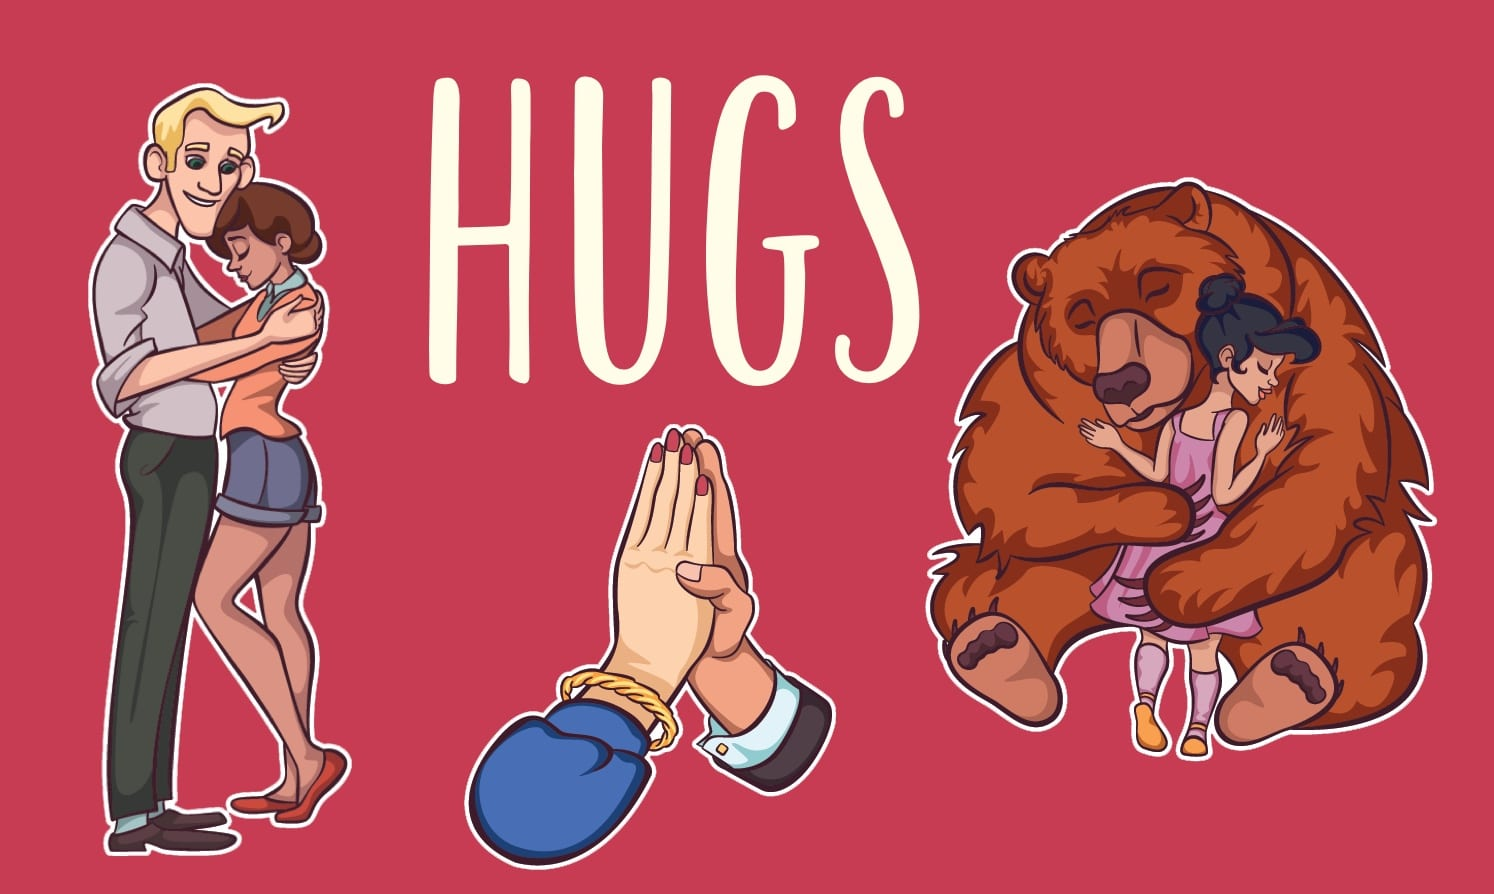 Hugs card game